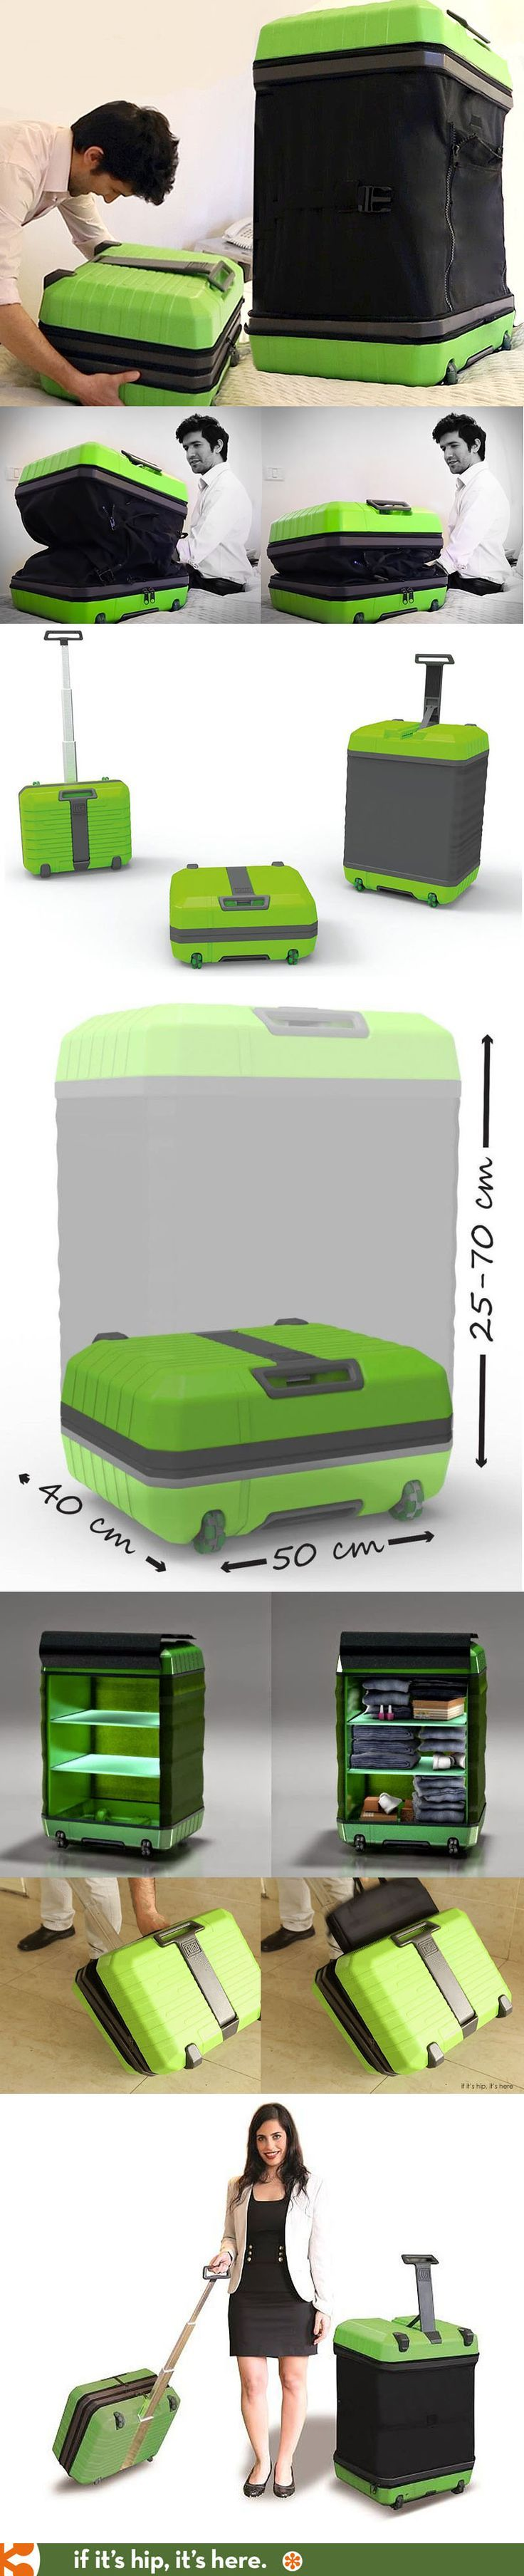 FUGU - revolutionary expanding luggage that goes from a carry-on into a check-in...